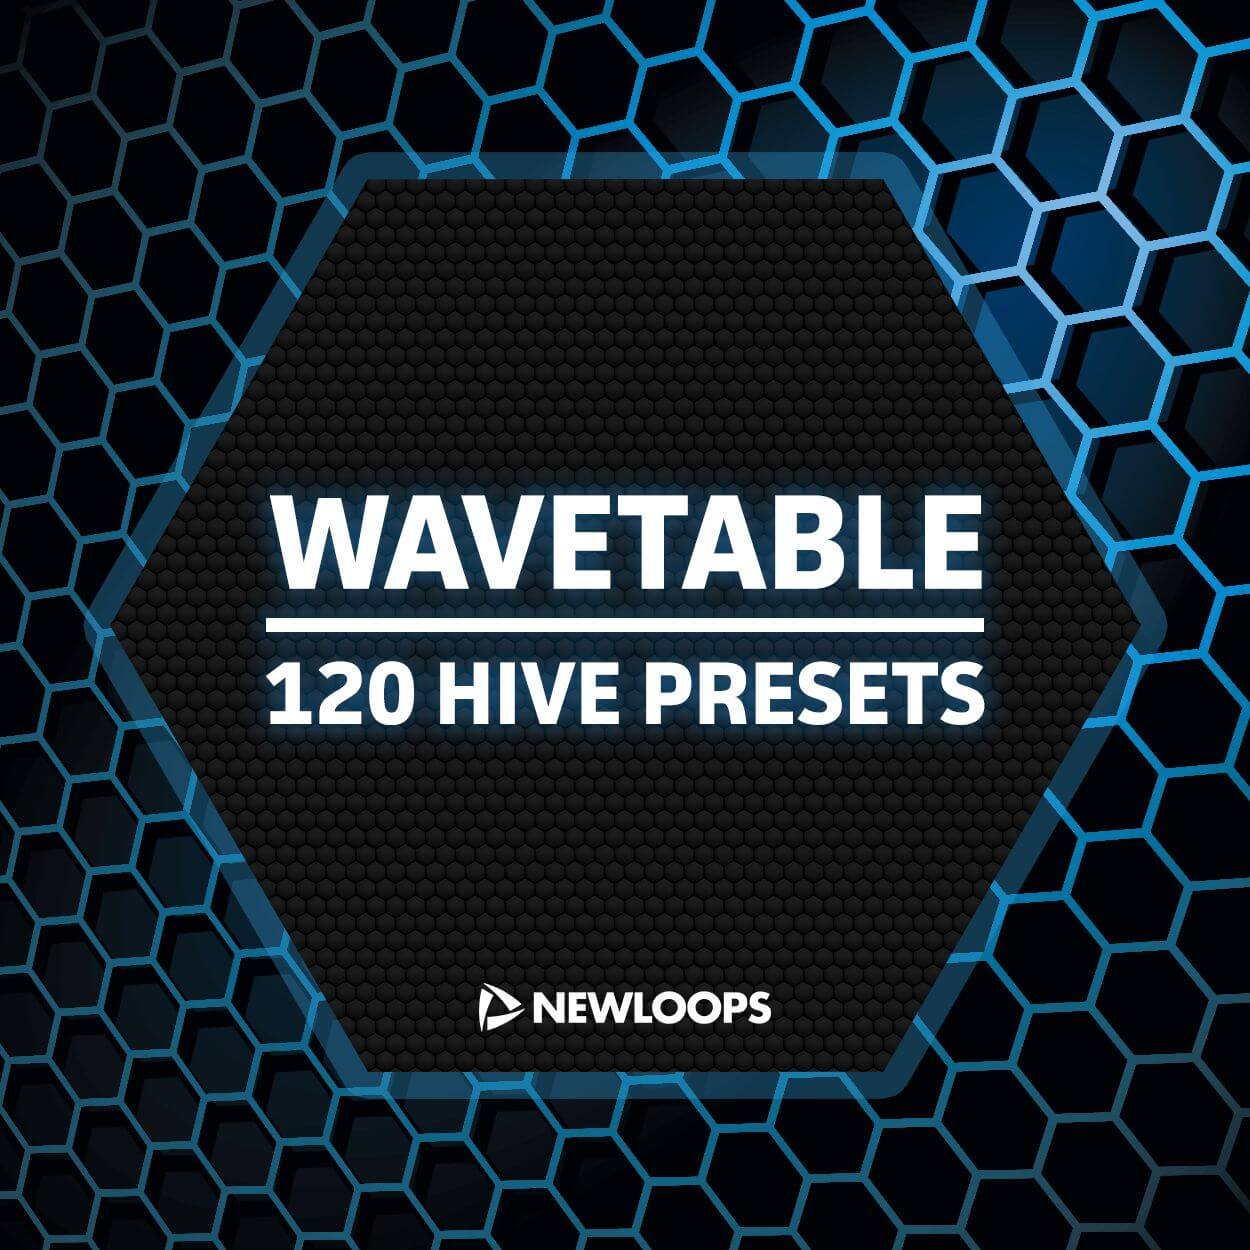 New Loops releases Wavetable soundset for u-he's Hive synth